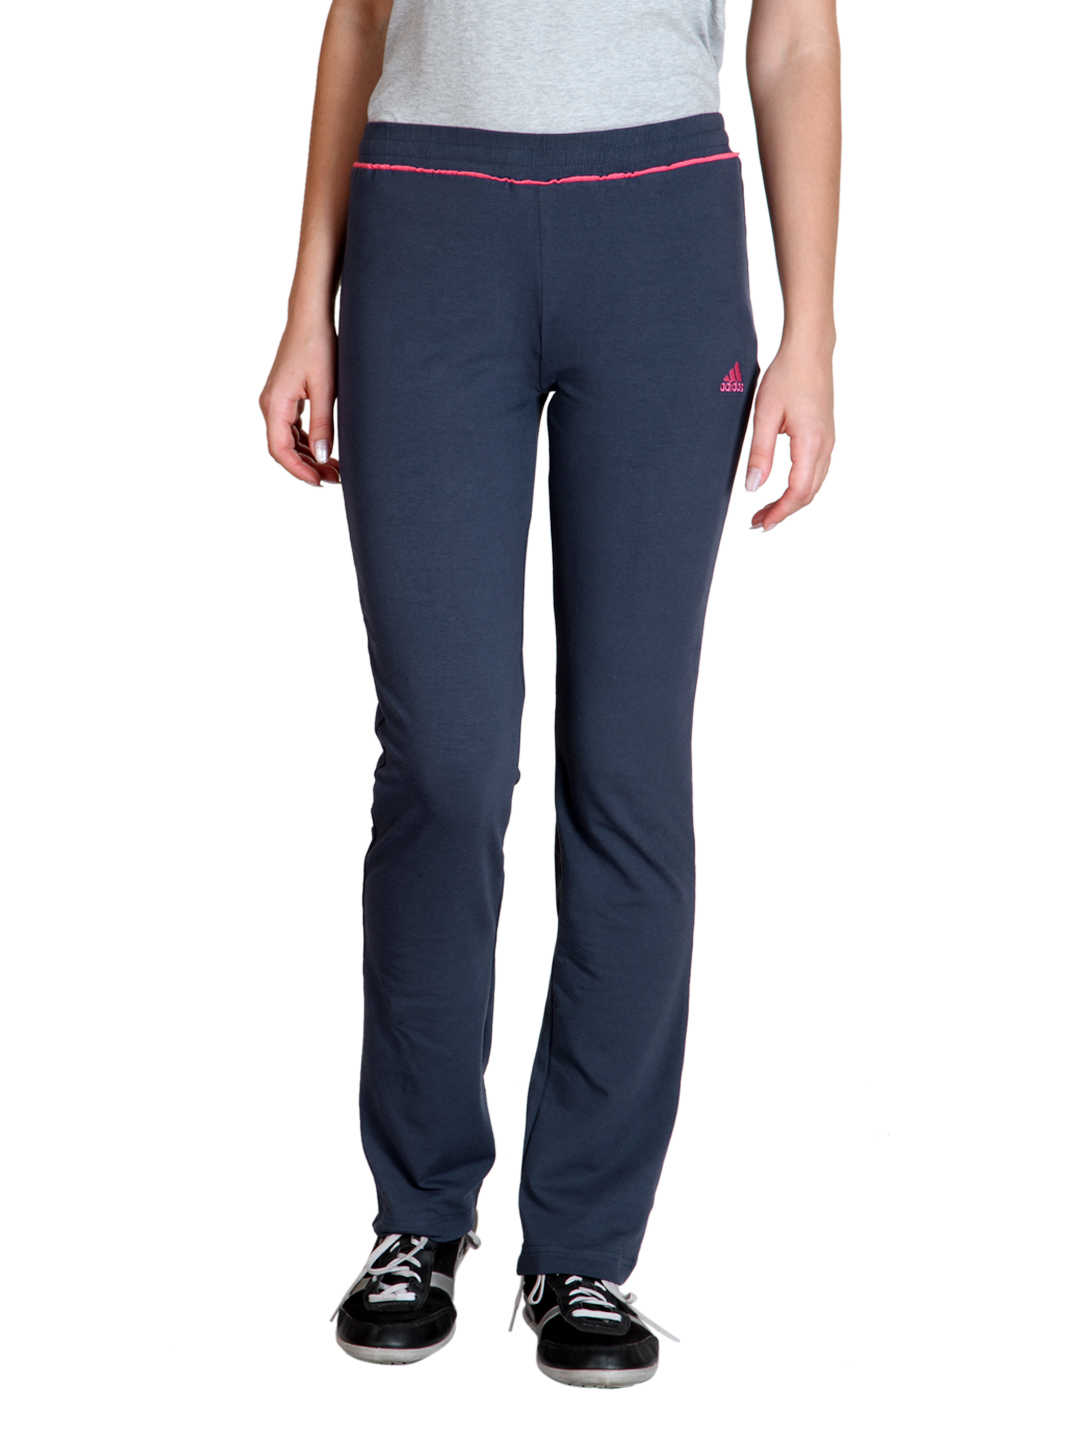 Adidas Women Navy Blue Track Pants